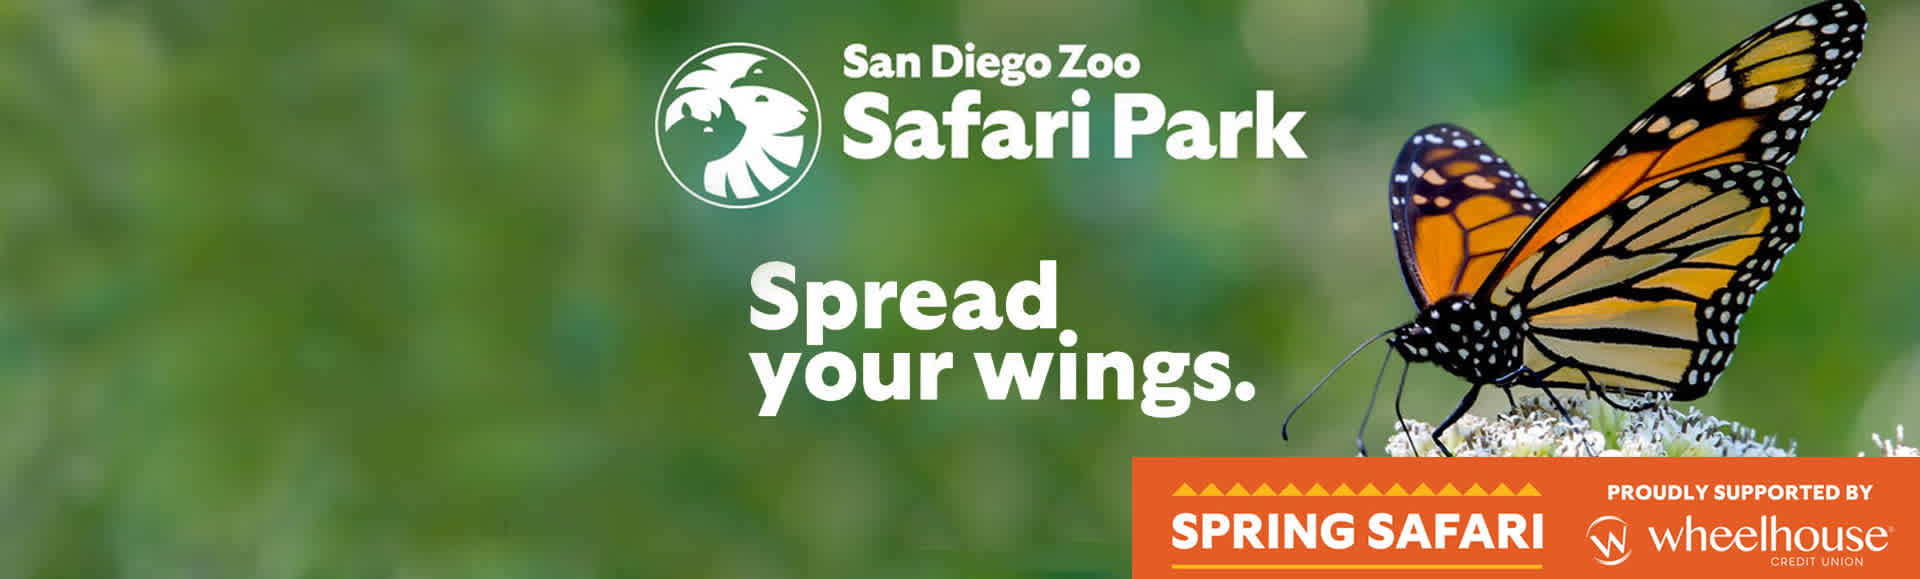 Safari Park Discounted Tickets